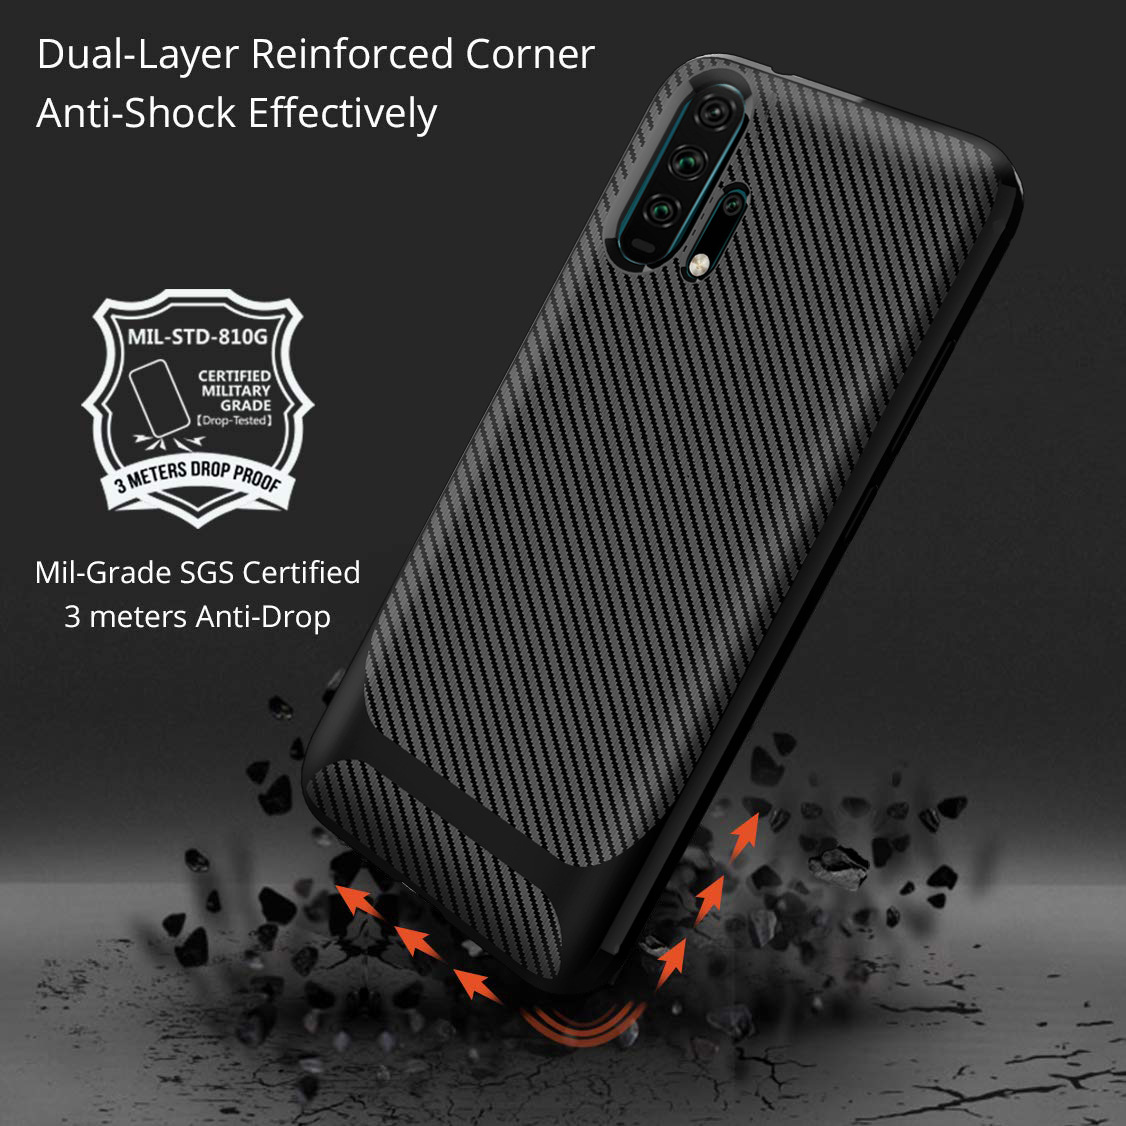 20 For Huawei Honor 20 Case Honor20 Carbon Fiber Textue Silicone TPU Soft Back Cover for Huawei Honor 20 Pro Phone Case Phone Bag (4)